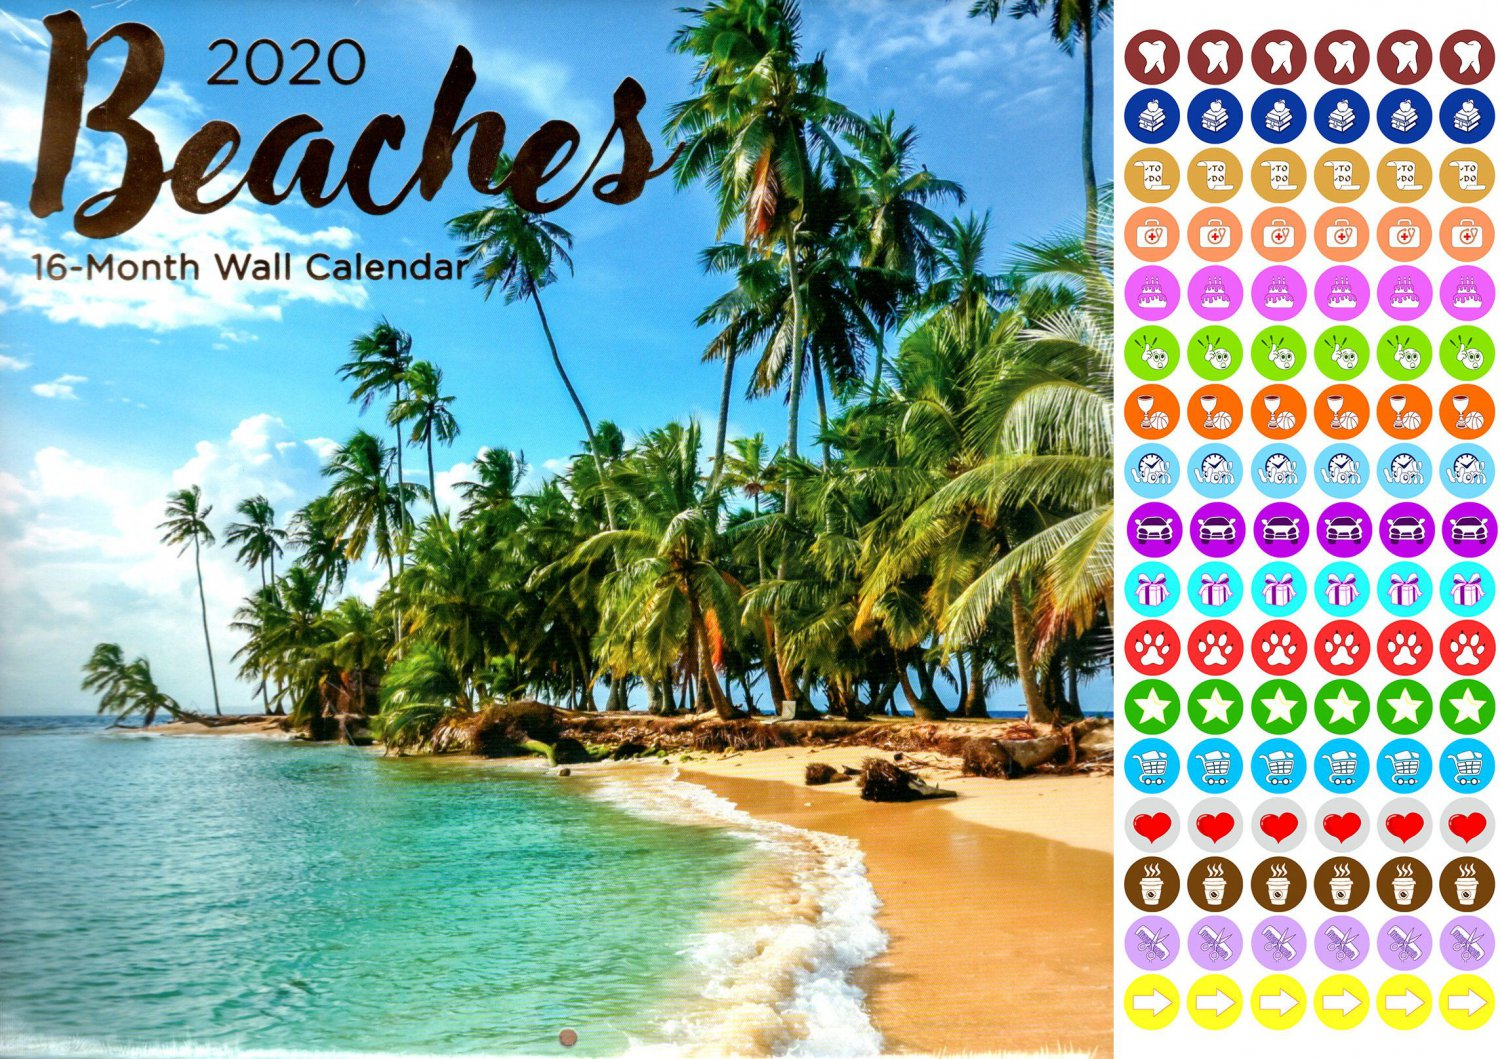 Beaches - 16 Month 2020 Wall Calendar (September 2019 - December 2020)